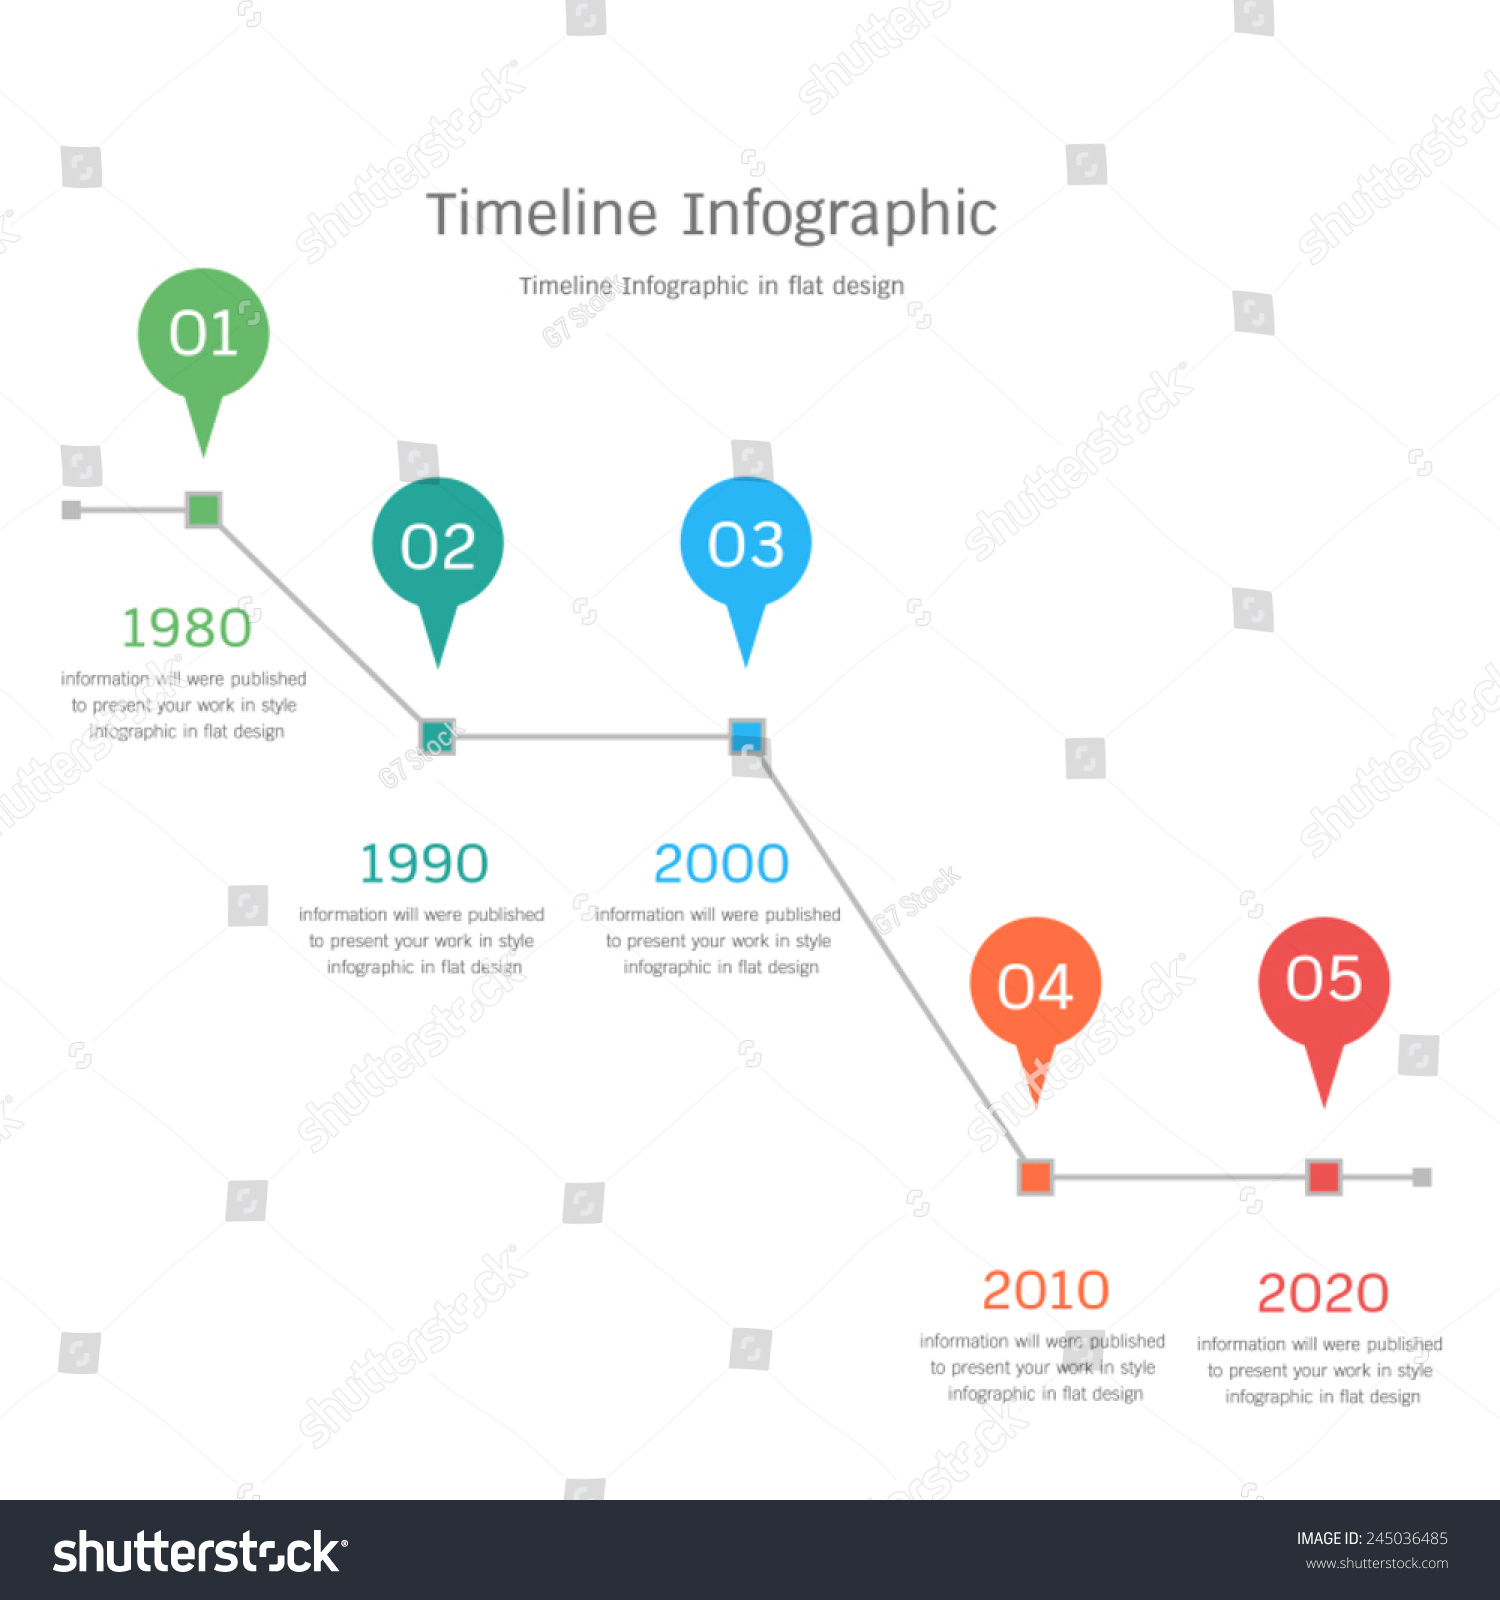 Timeline Infographic Flat Design Stock Vector 245036485 ...